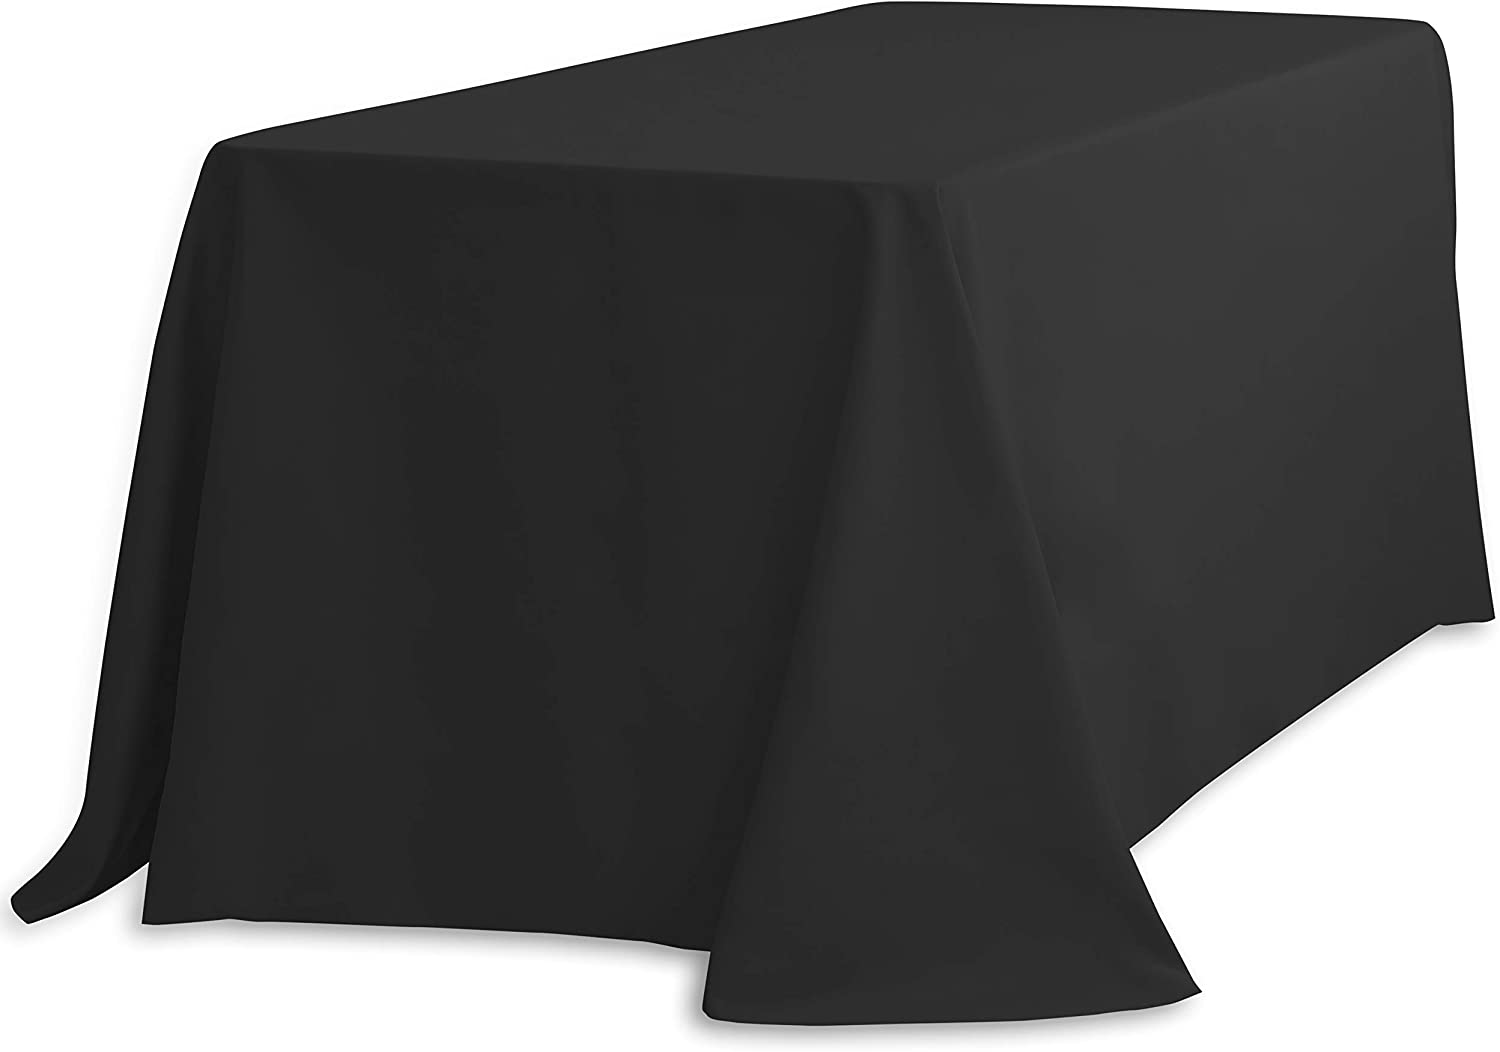 LinenTablecloth 90 Inventory cleanup selling sale x 132-Inch Tablecloth w Rectangular Finally popular brand Polyester